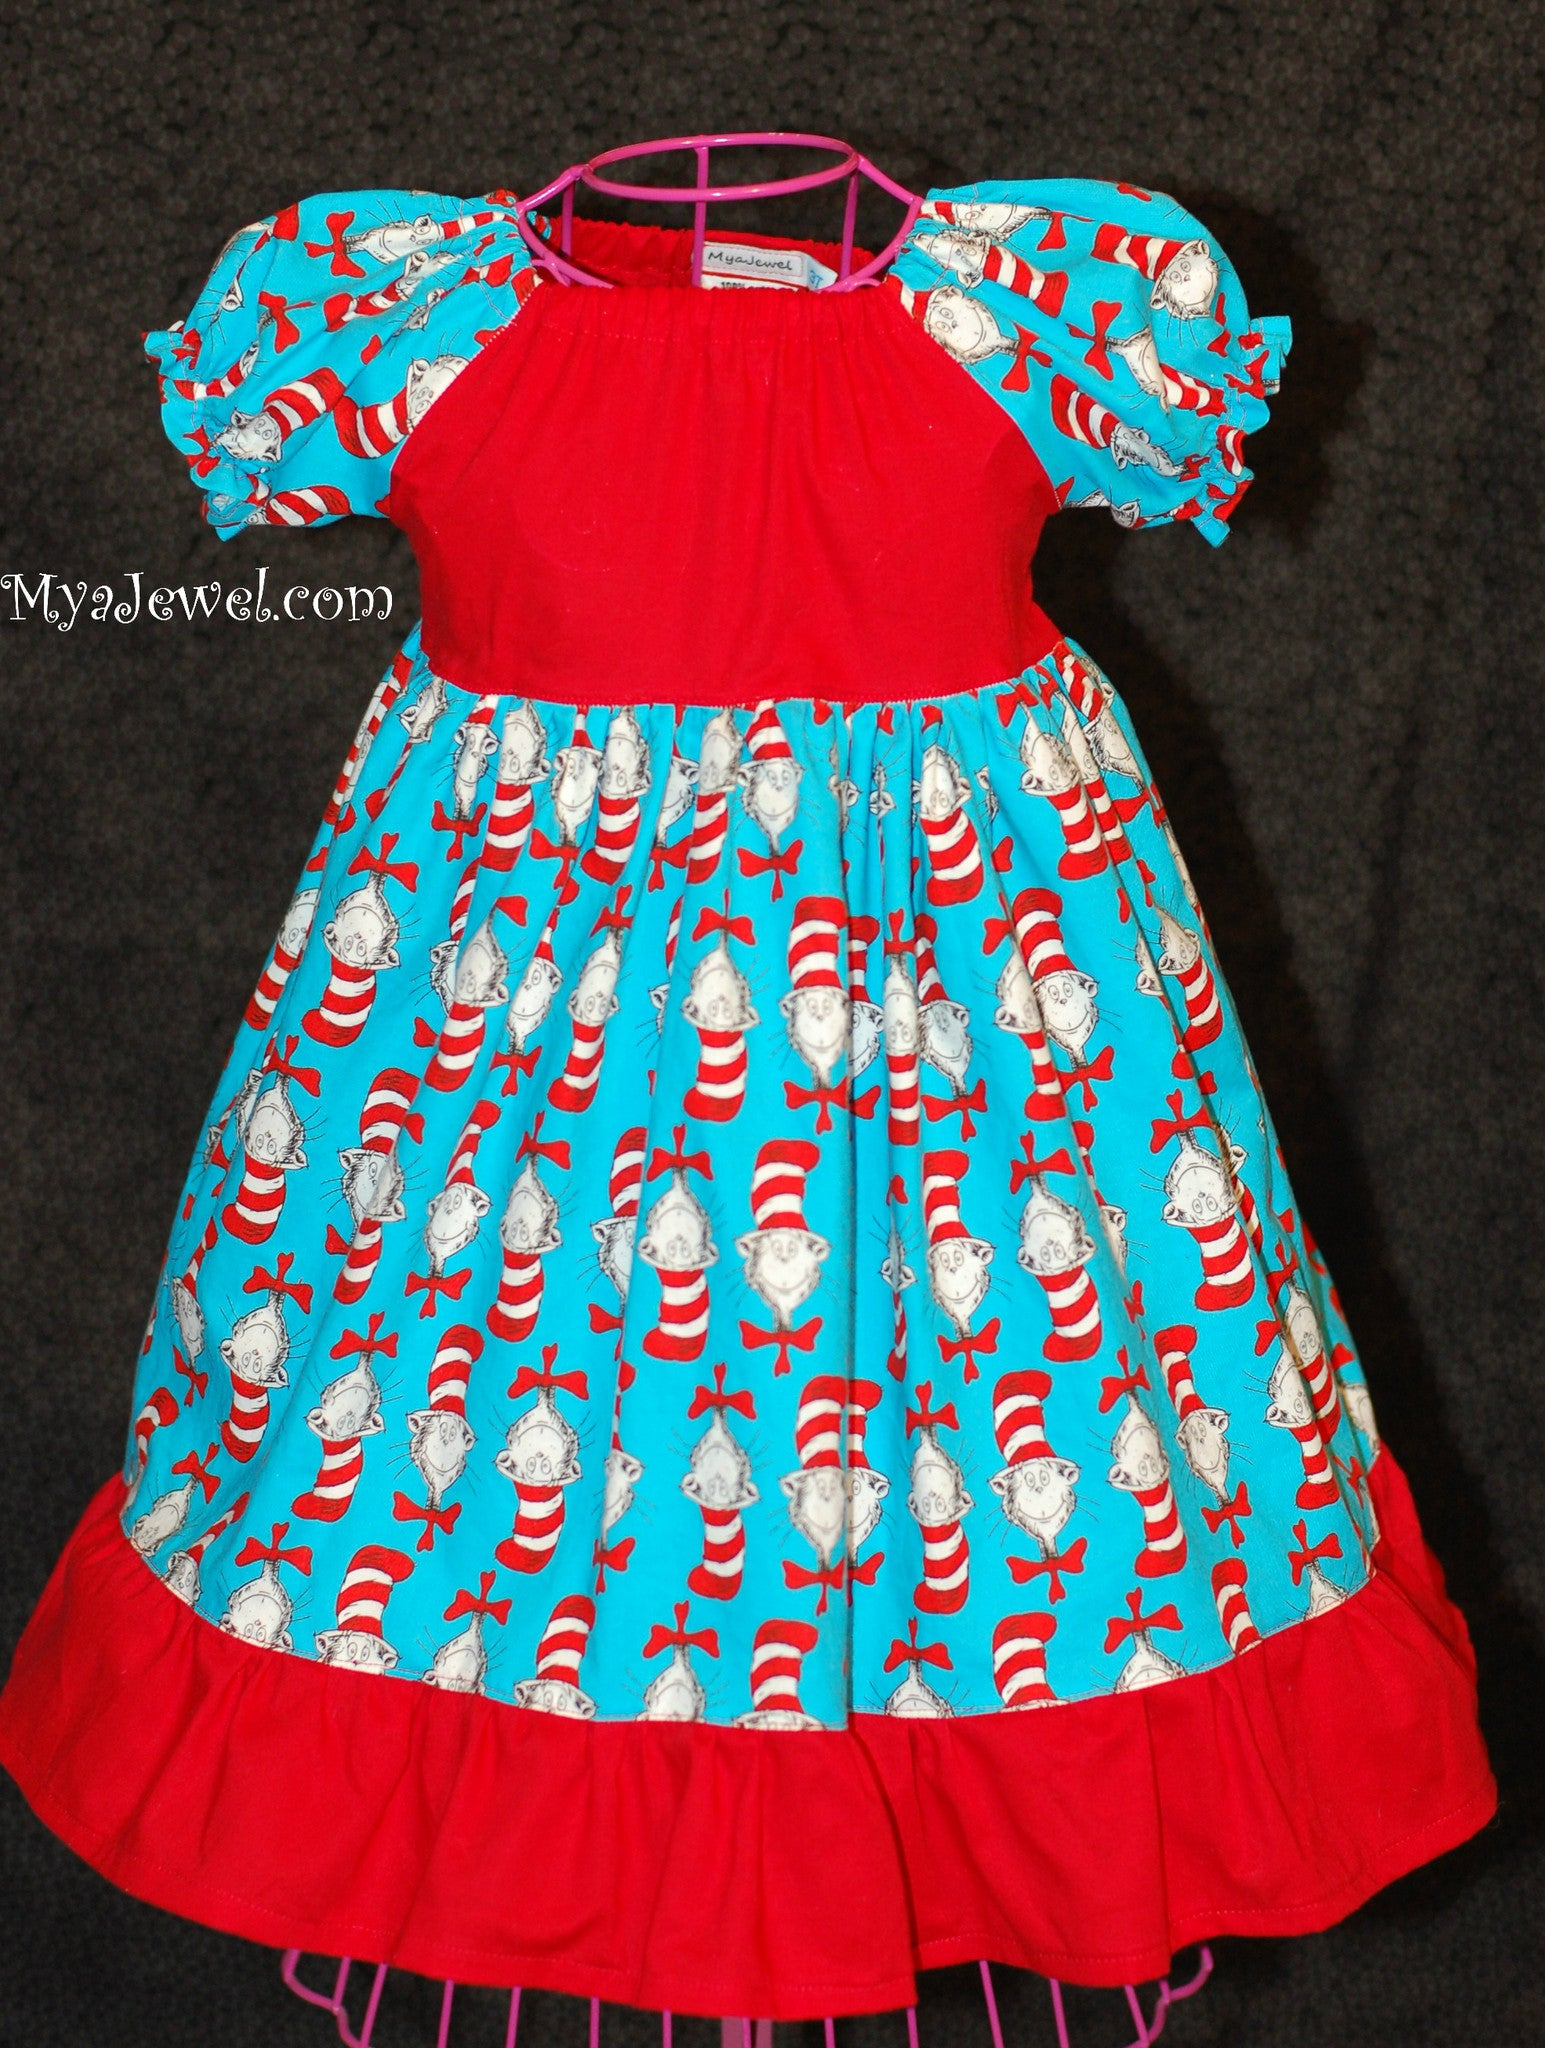 Dress made with Dr. Seuss / Cat In the Hat fabric (no Sash)